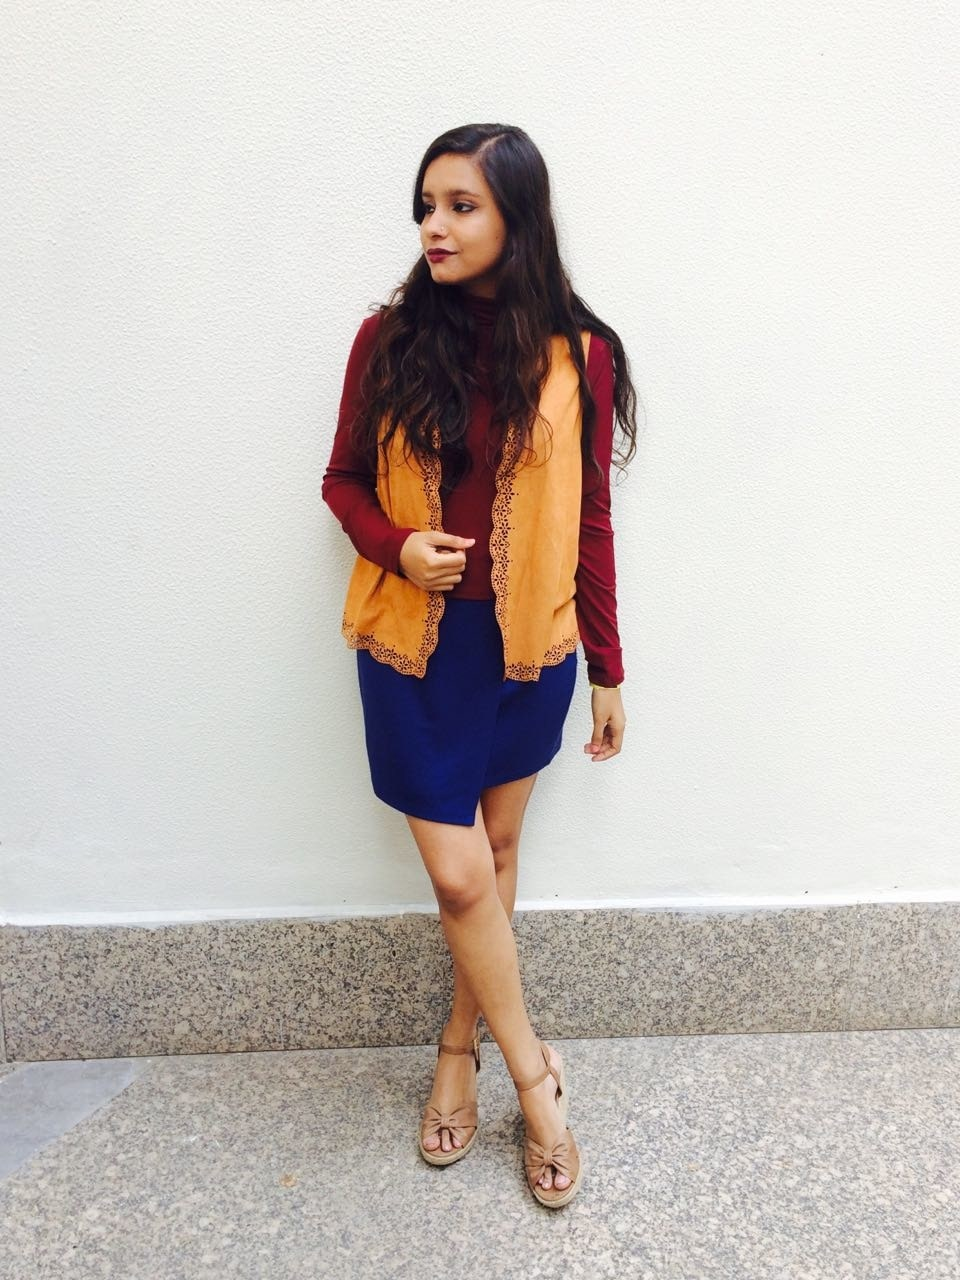 #ootd at popxo love fest!    #ootd #delhifashionblogger #fashion #fashionblogger #new-style #soroposo #roposogal